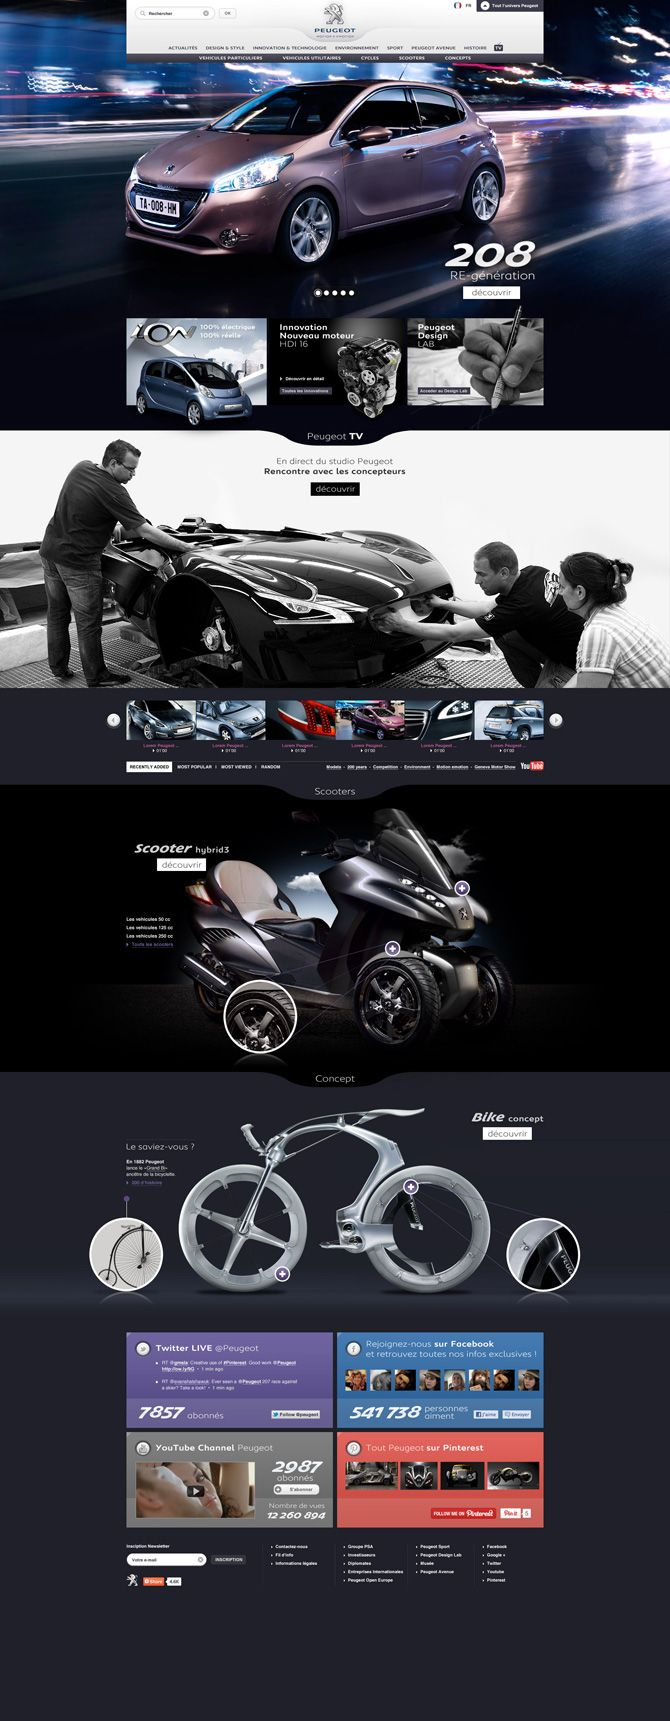 Peugeot - Pf - Interactive Art Direction Please like, share and repin. Cheers! :)